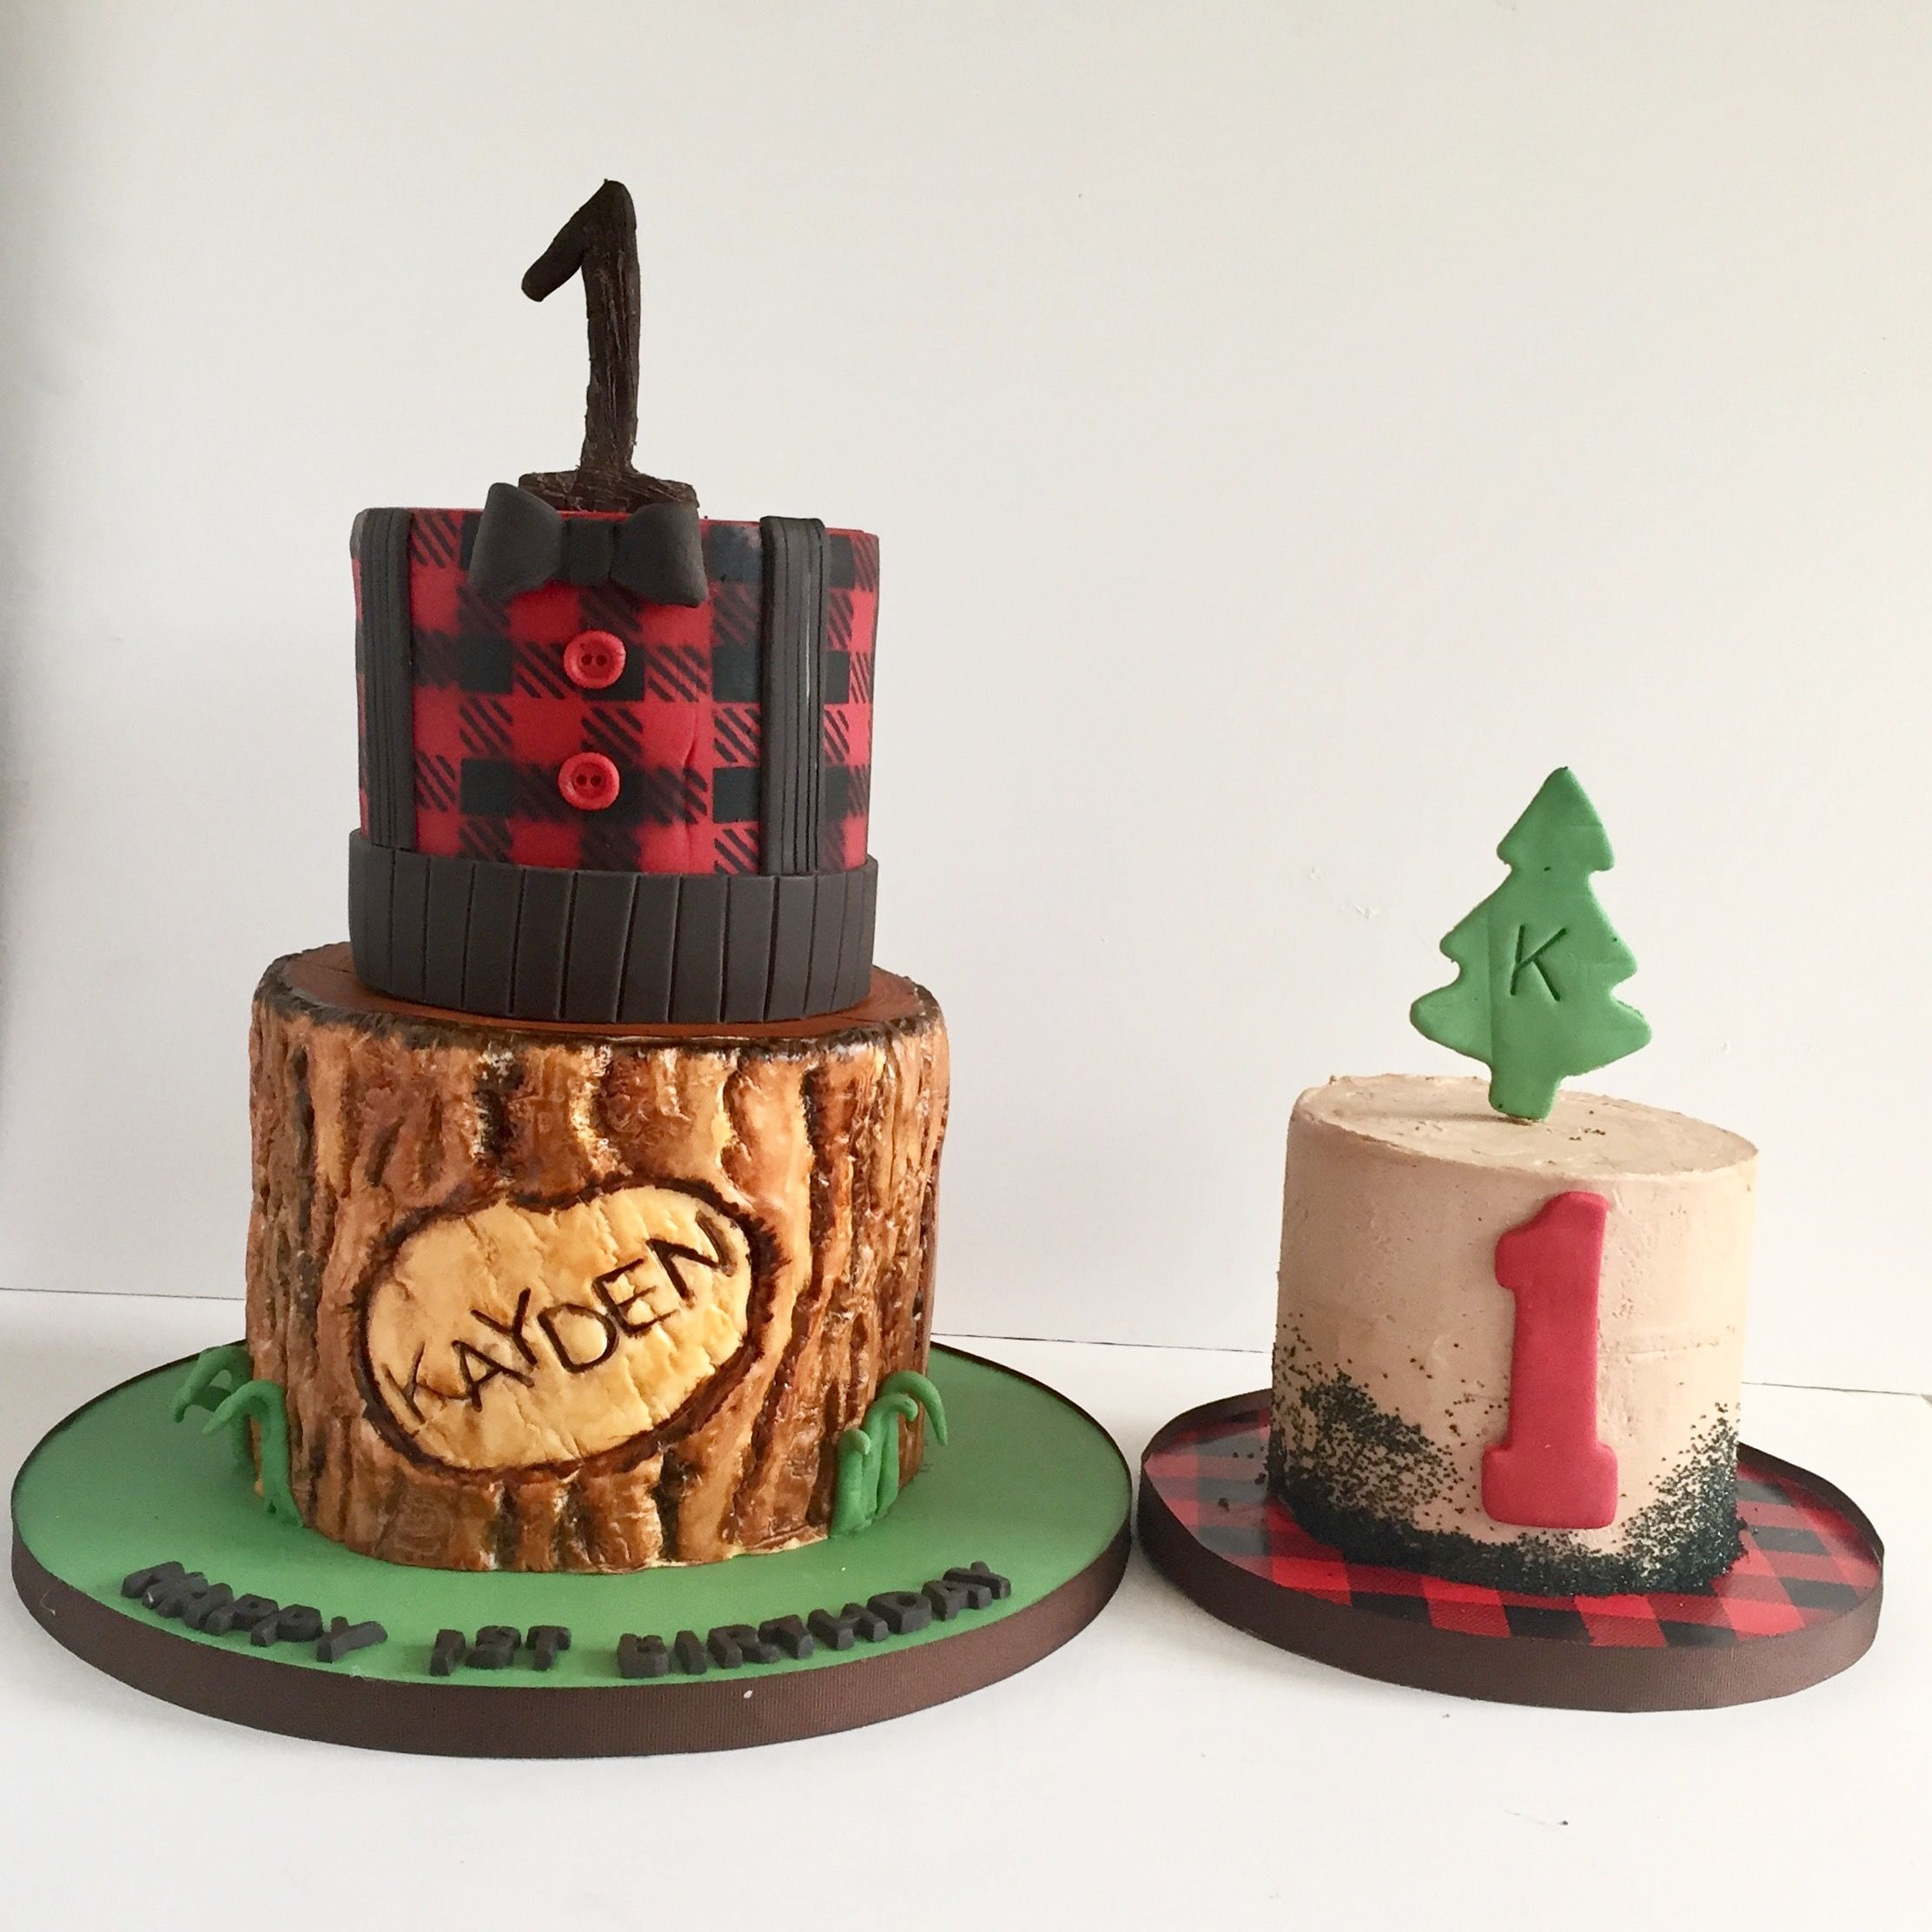 Plaid First Birthday Cake By Shannon Bond Cake Design Cakes